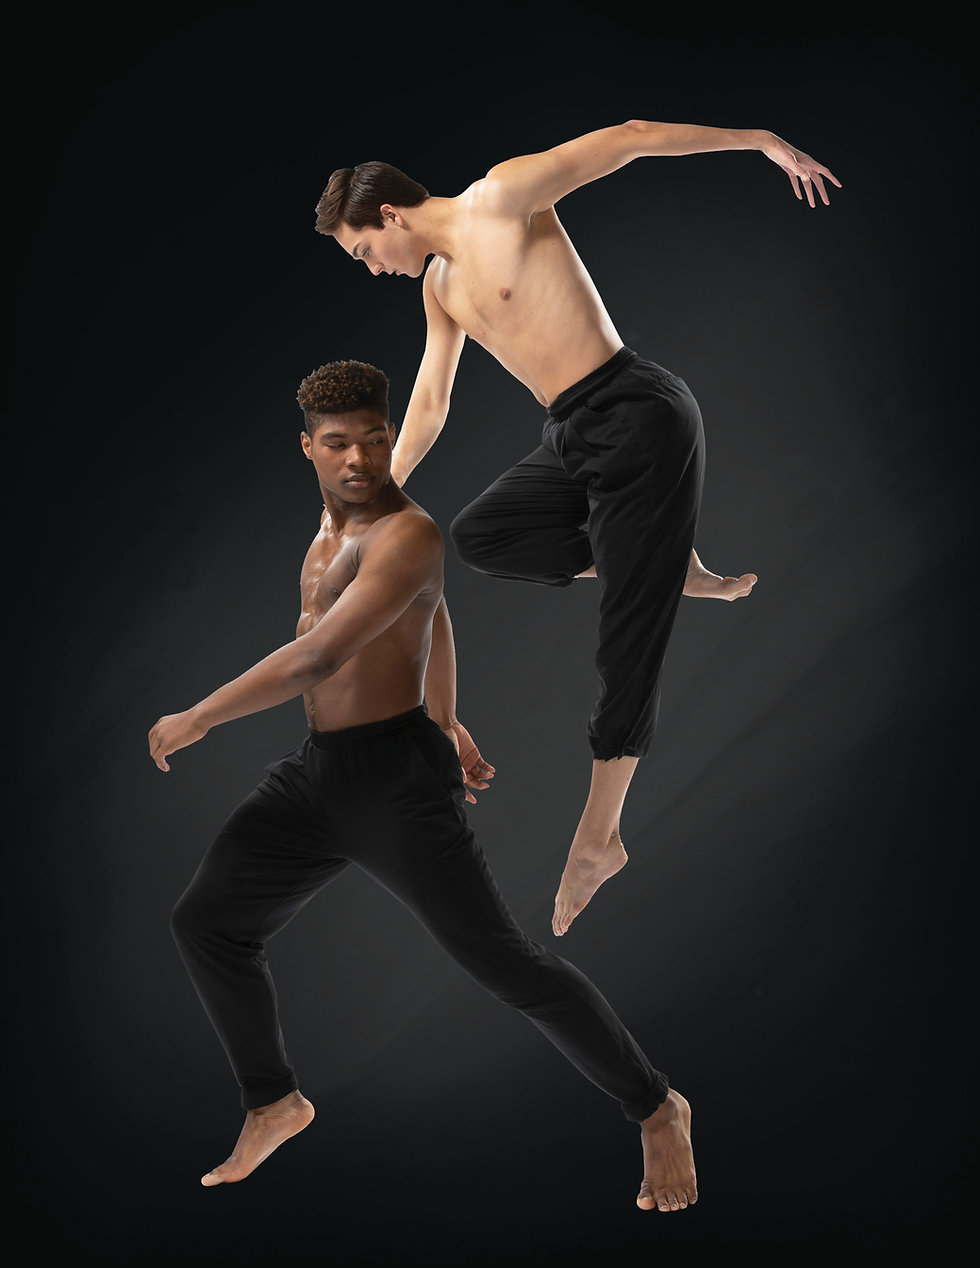 Two male dancers wearing black pants paused during a dance routine.